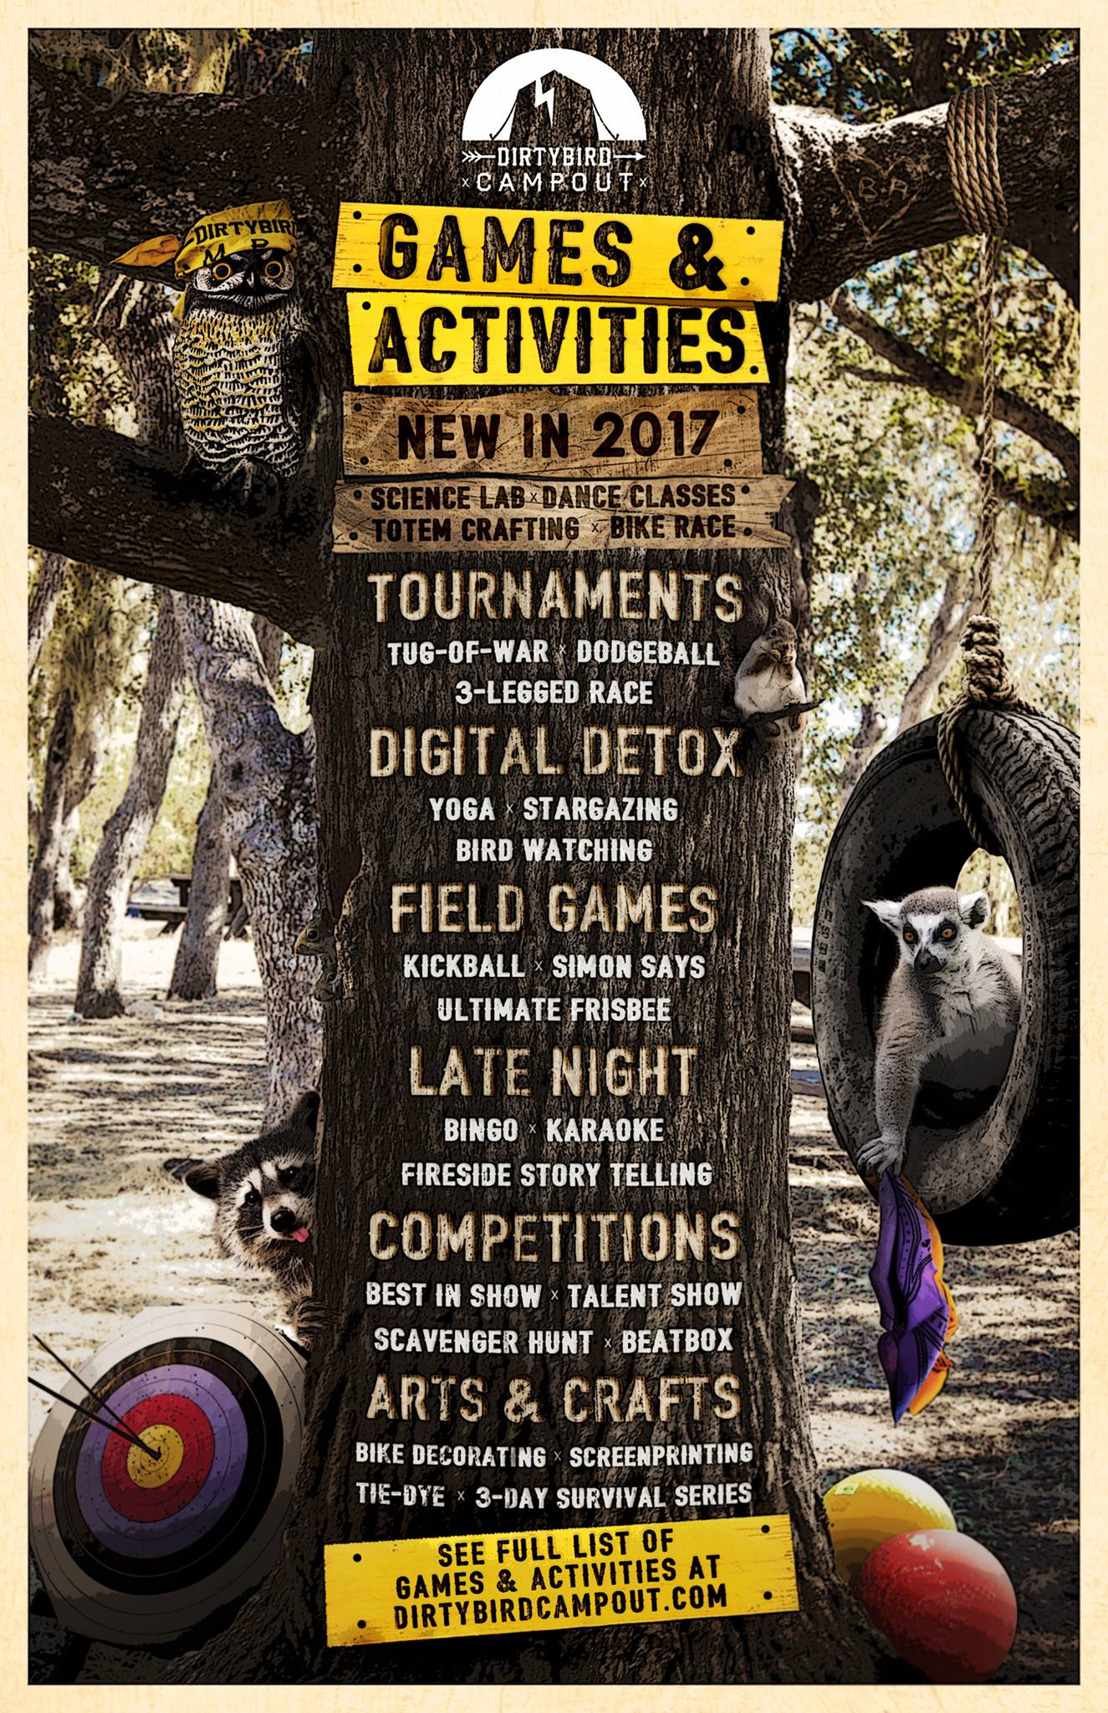 DIRTYBIRD Campout Reveals More Than 60 Games & Activities for 2017 Edition